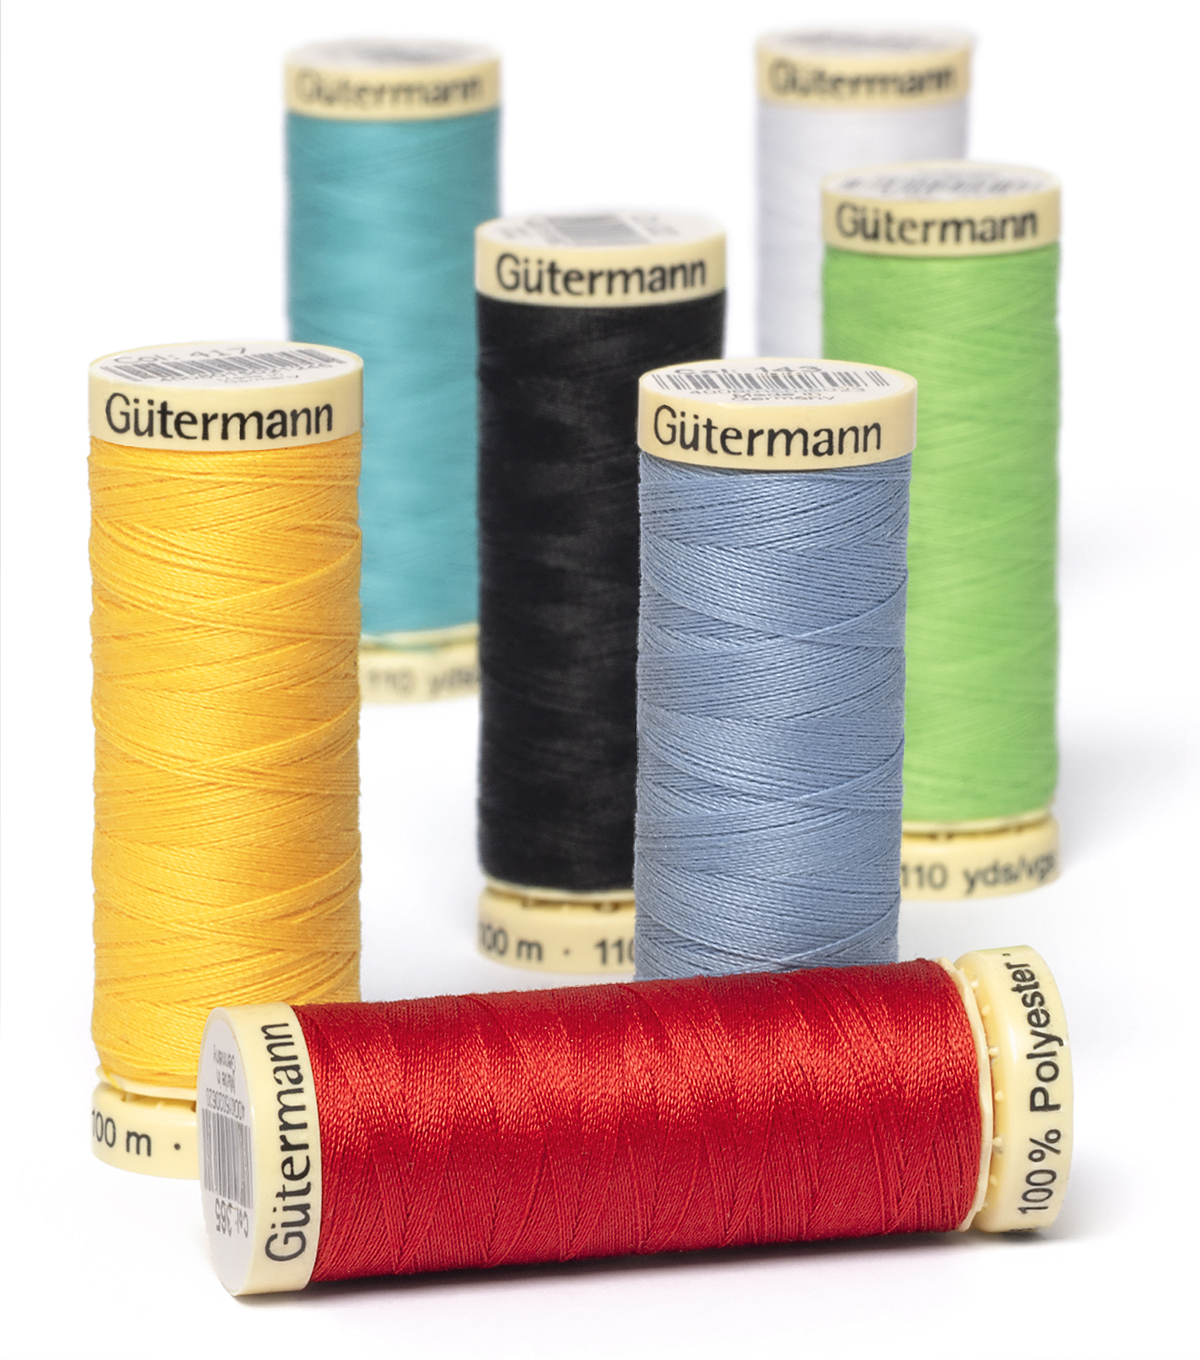 Gutermann Sew All Polyester Thread 110 Yards-Greens